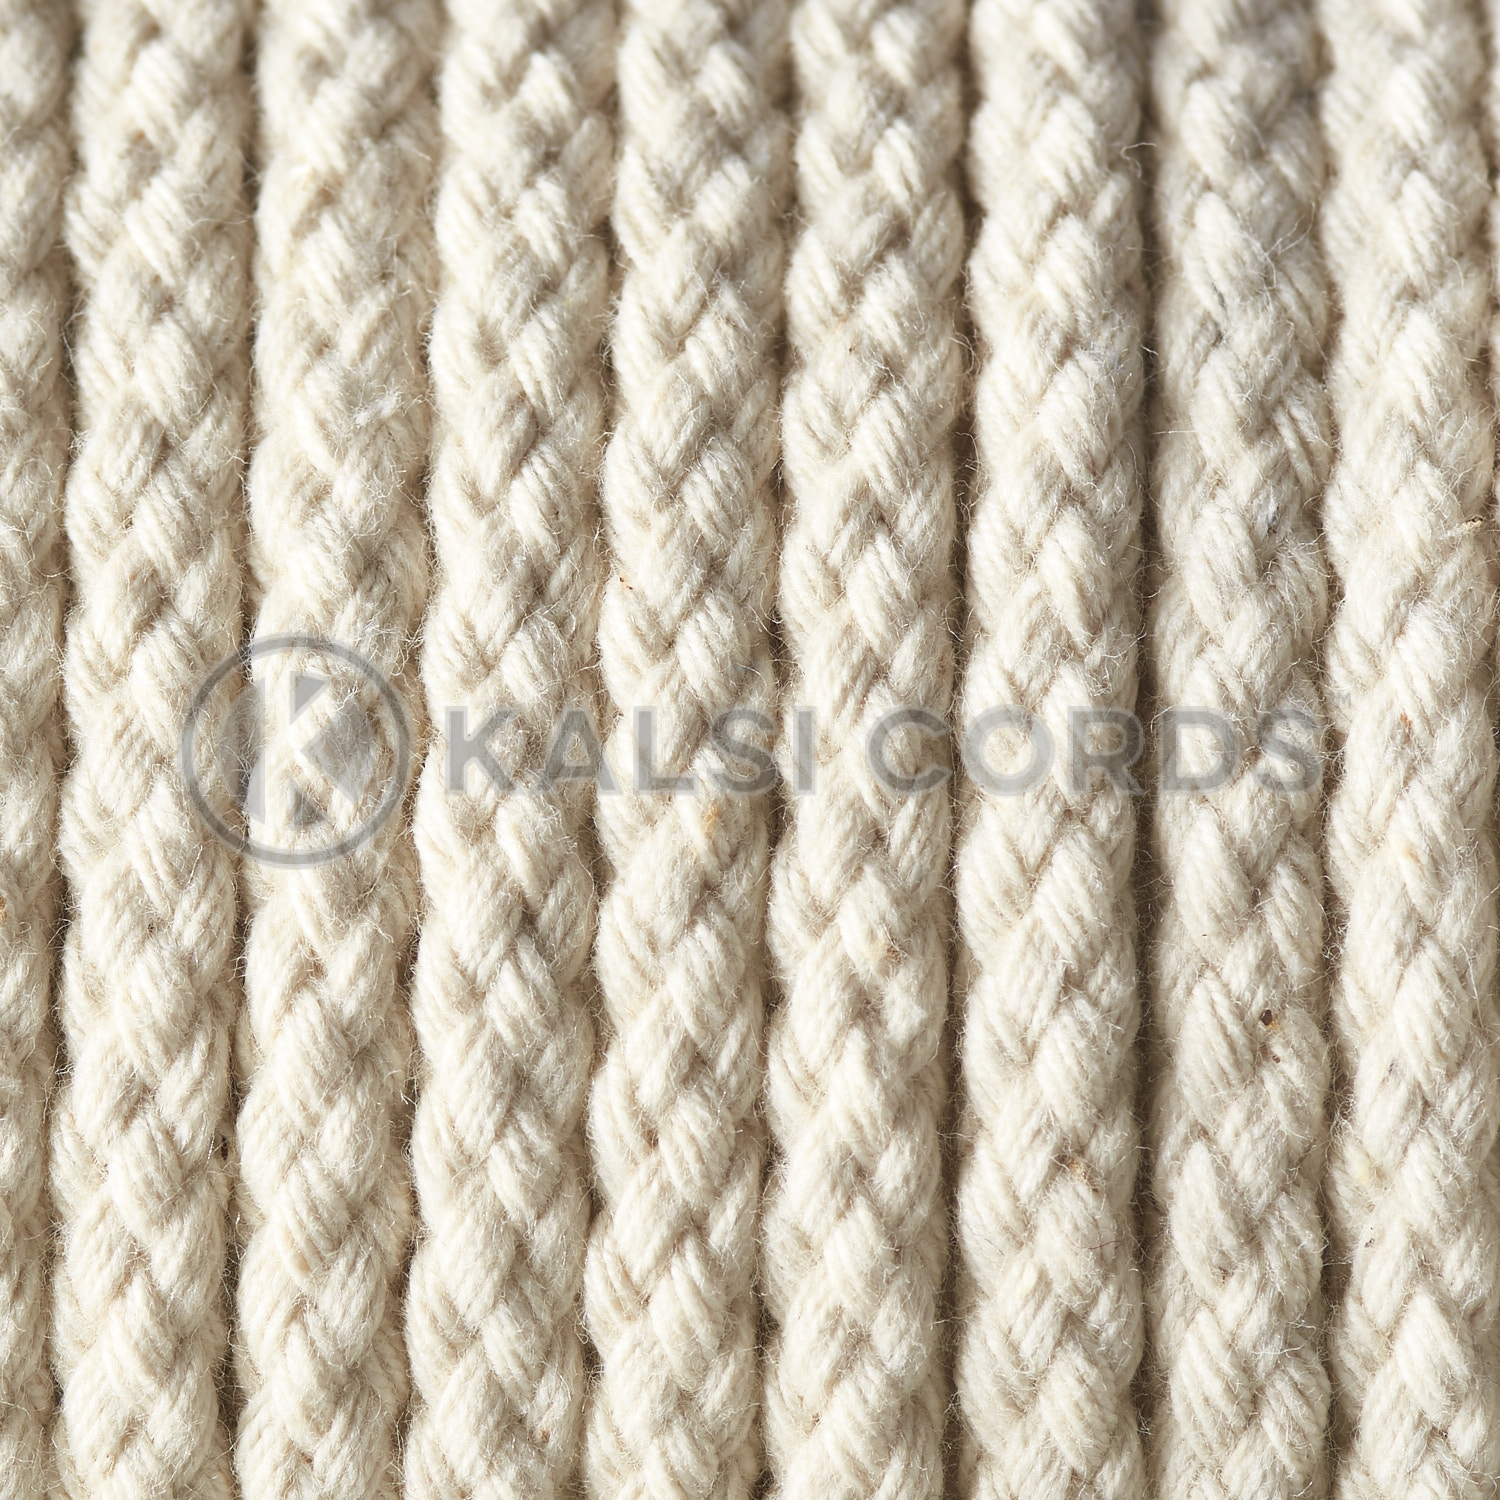 Natural Undyed 6mm Round Cotton Cord Braided String Drawcord Drawstring C212 Kalsi Cords